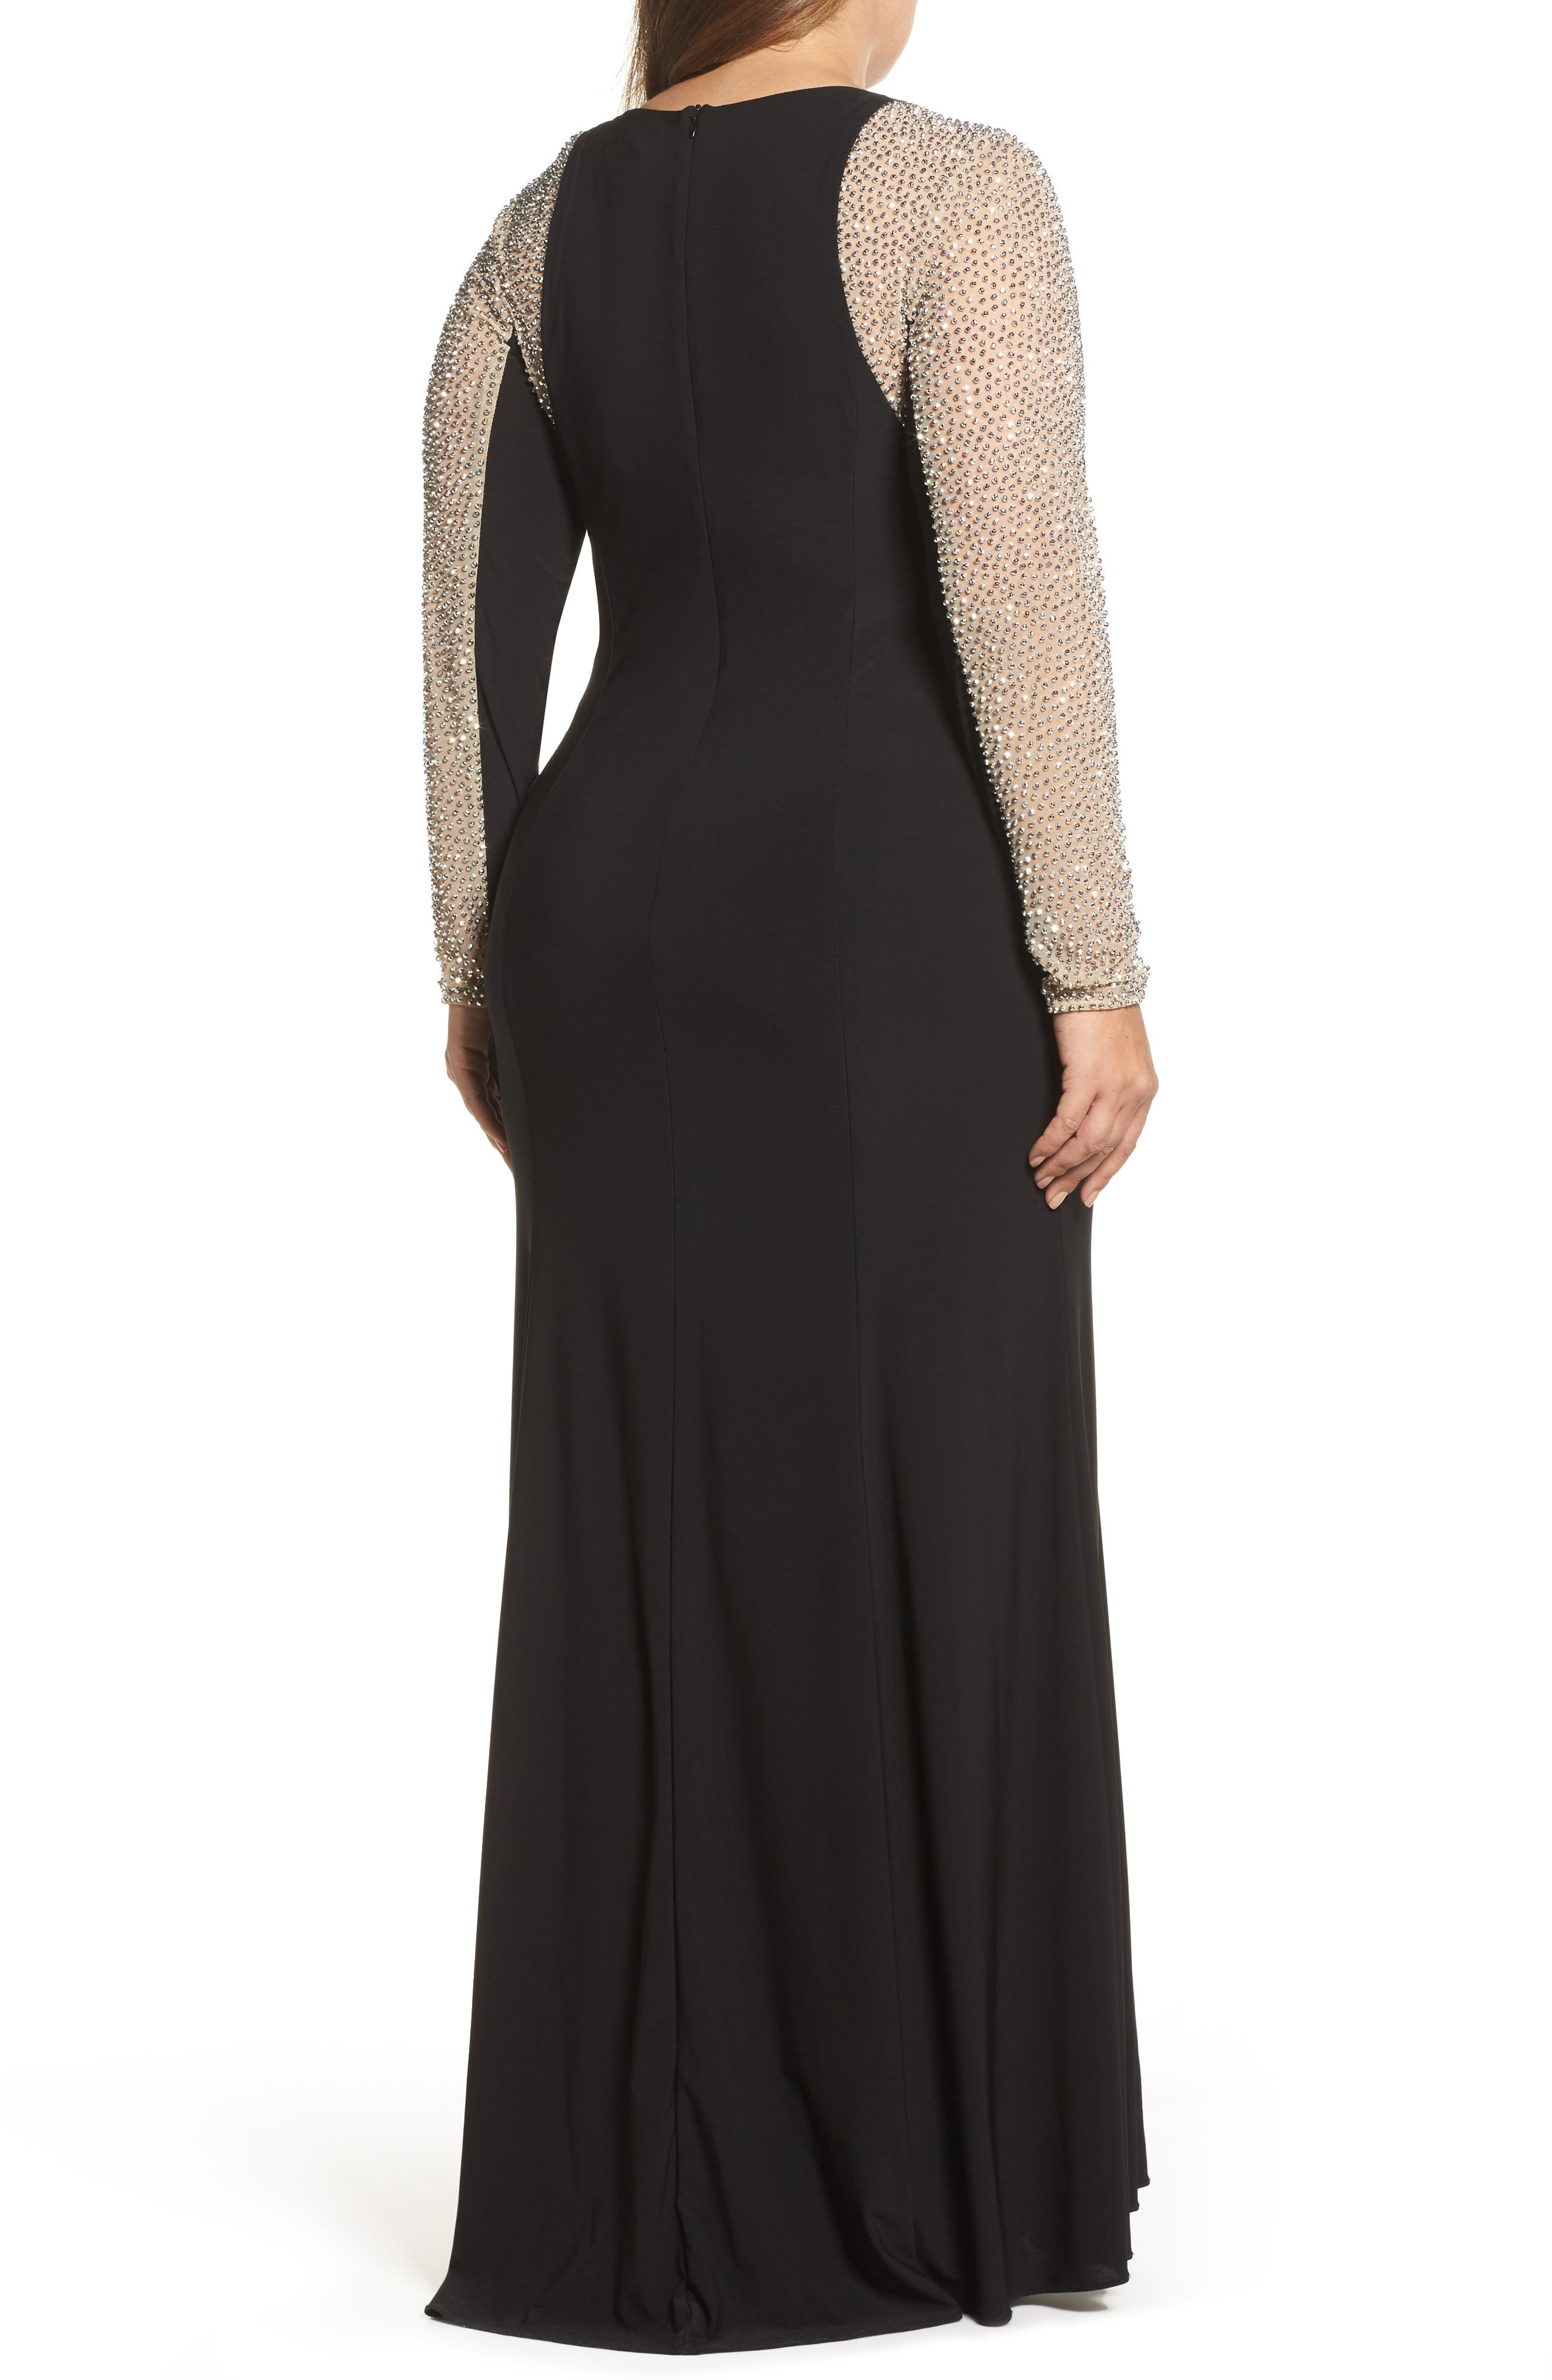 XSCAPE, Embellished Jersey Gown, Alternate thumbnail 2, color, BLACK/ NUDE/ SILVER